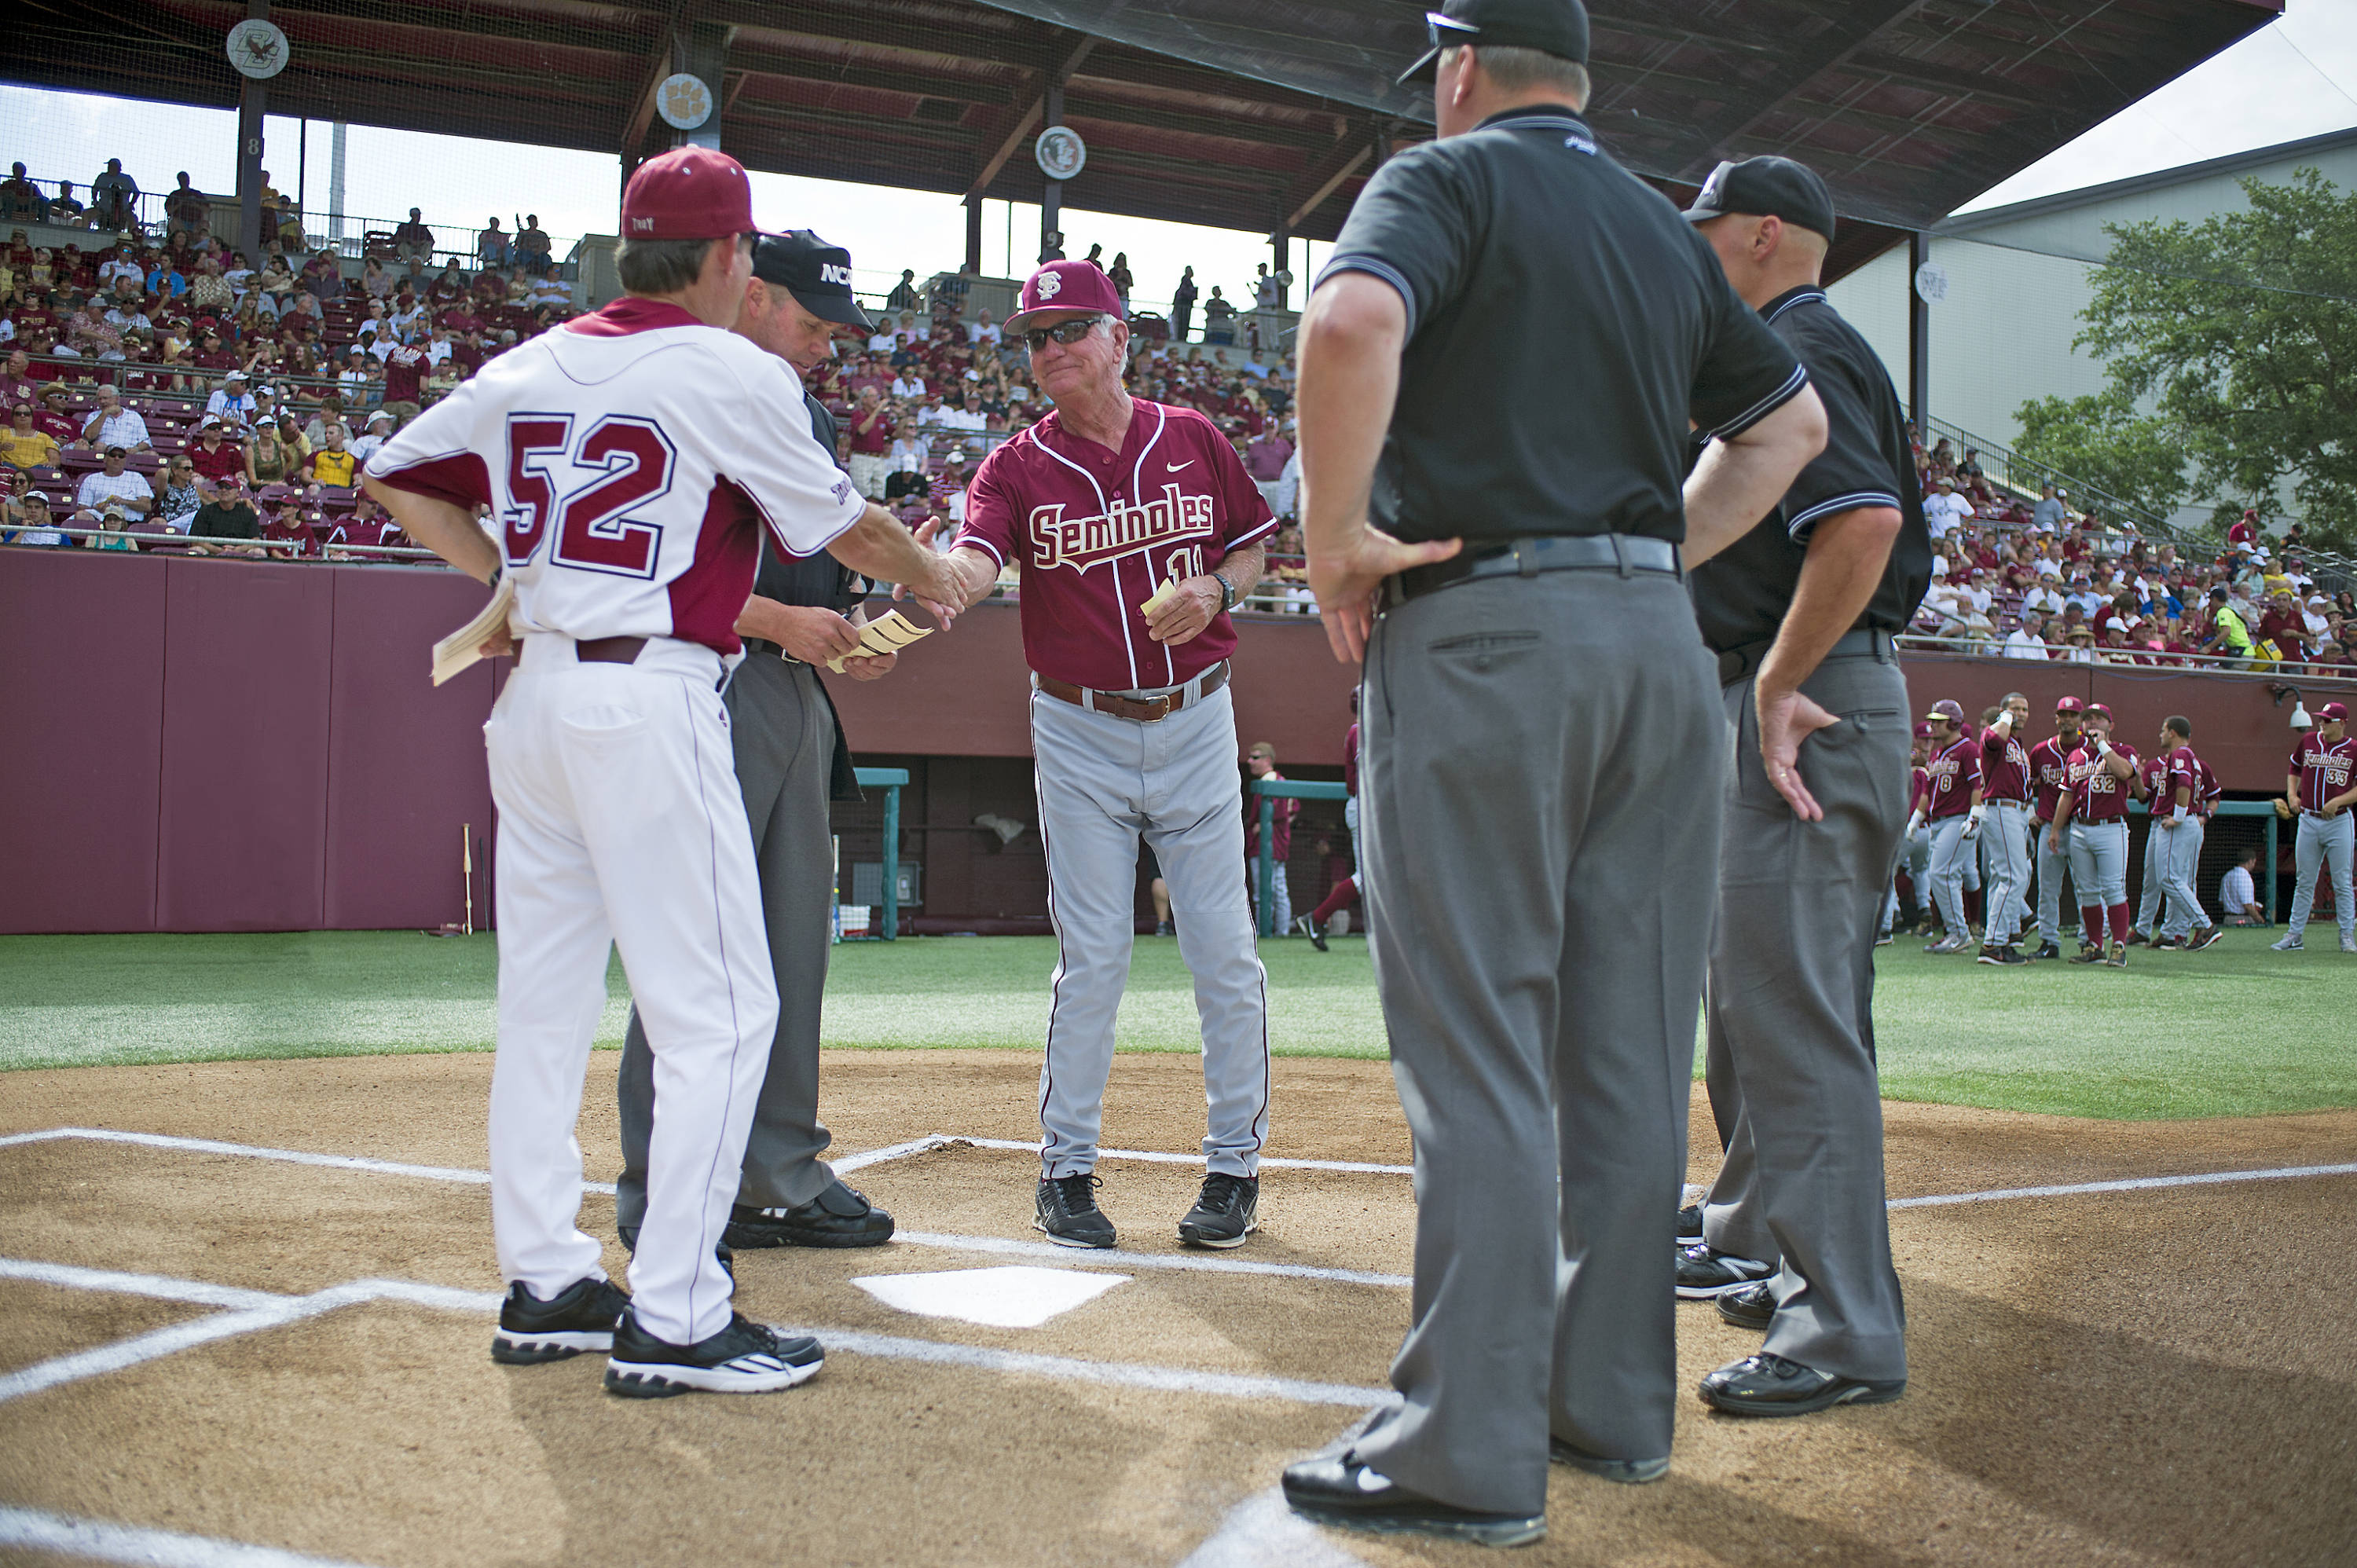 Mike Martin (11) shakes hands with Troy's coach after exchanging line ups